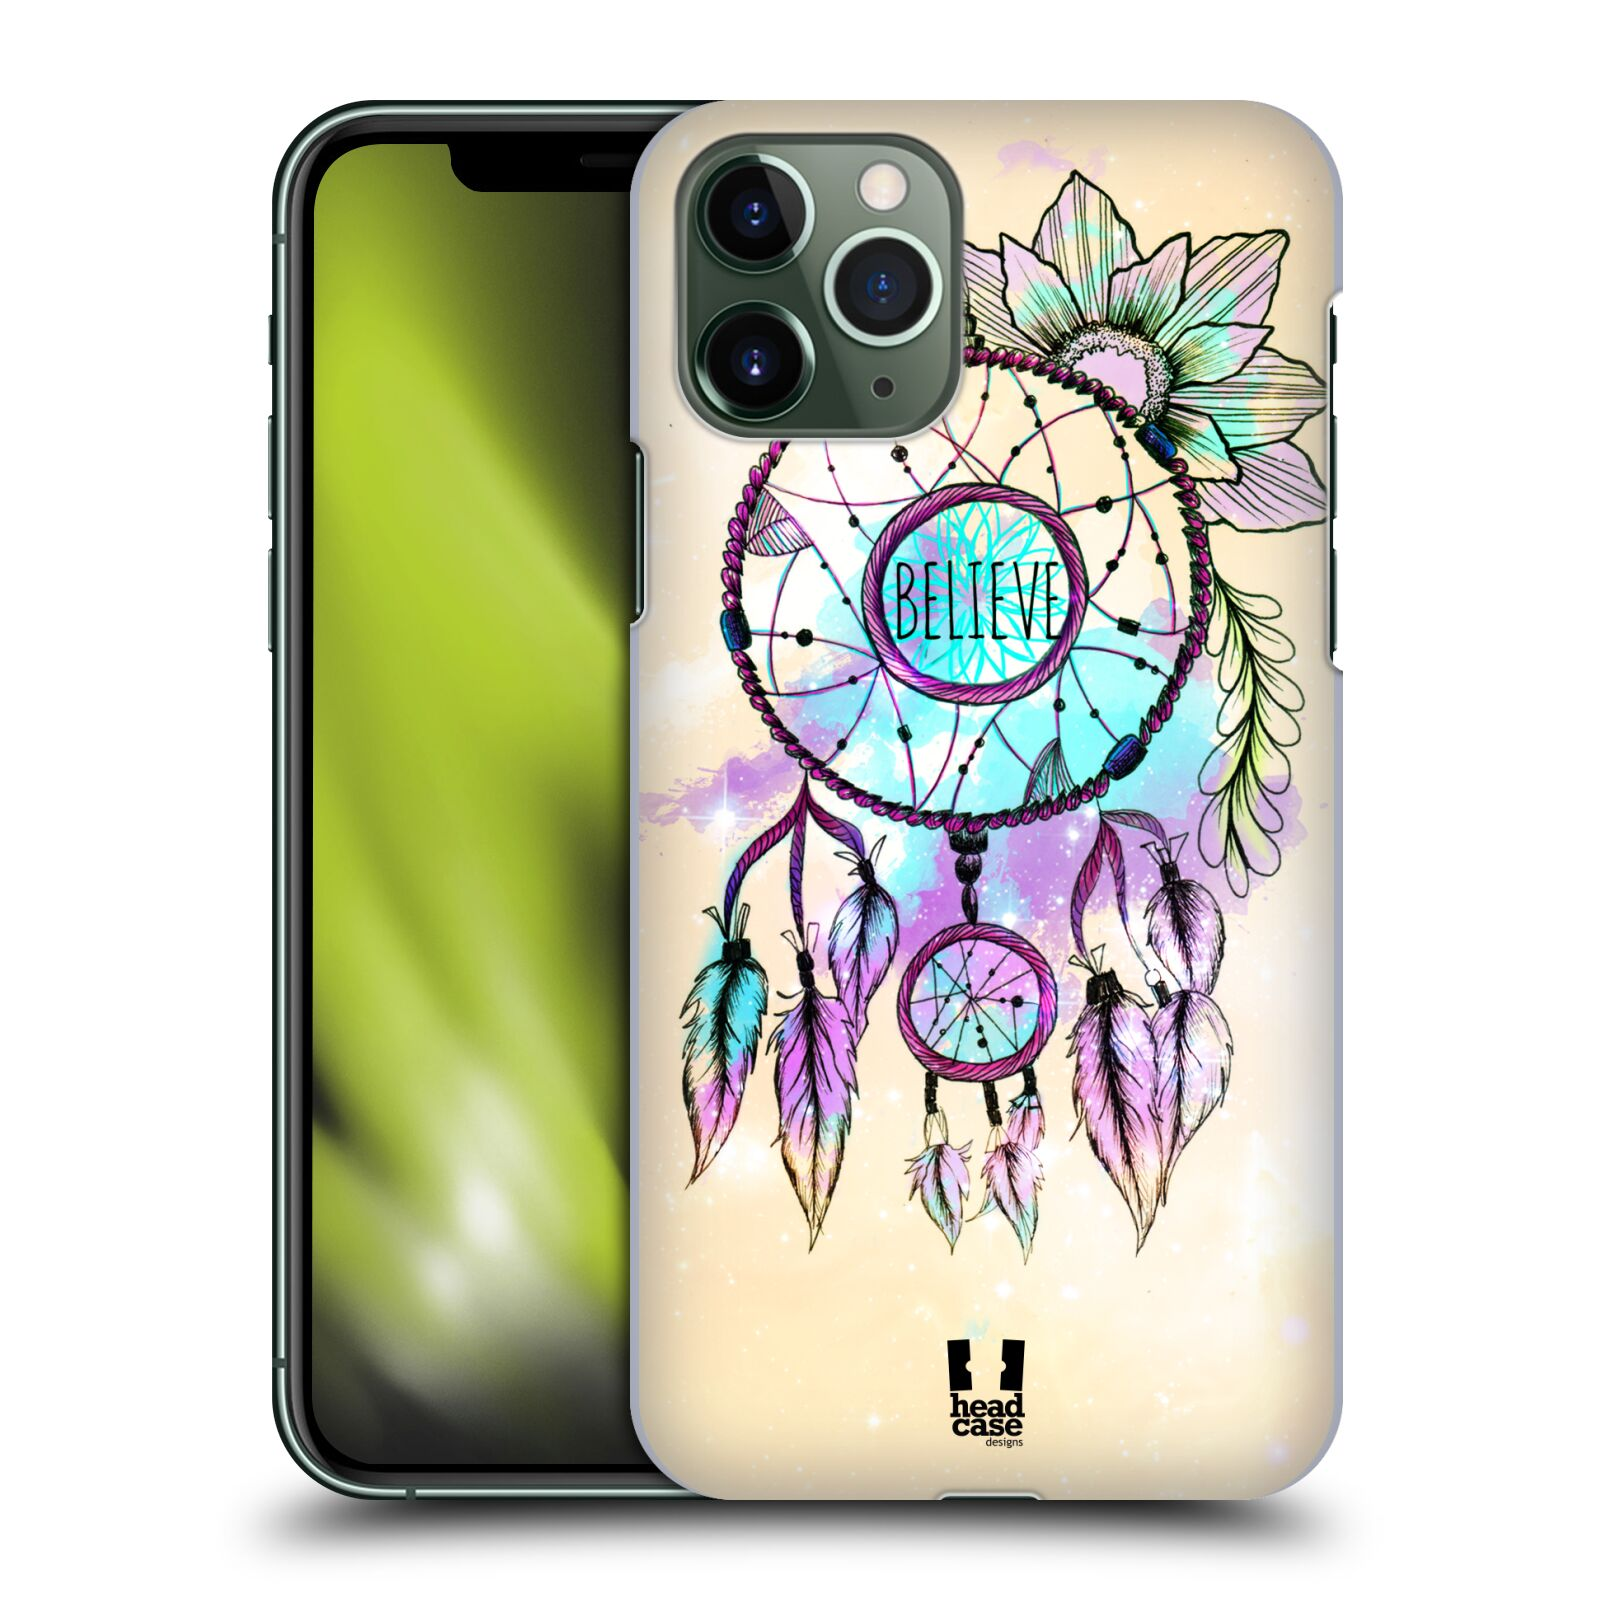 iphone obal bmw , Plastové pouzdro na mobil Apple iPhone 11 Pro - Head Case - MIX BELIEVE